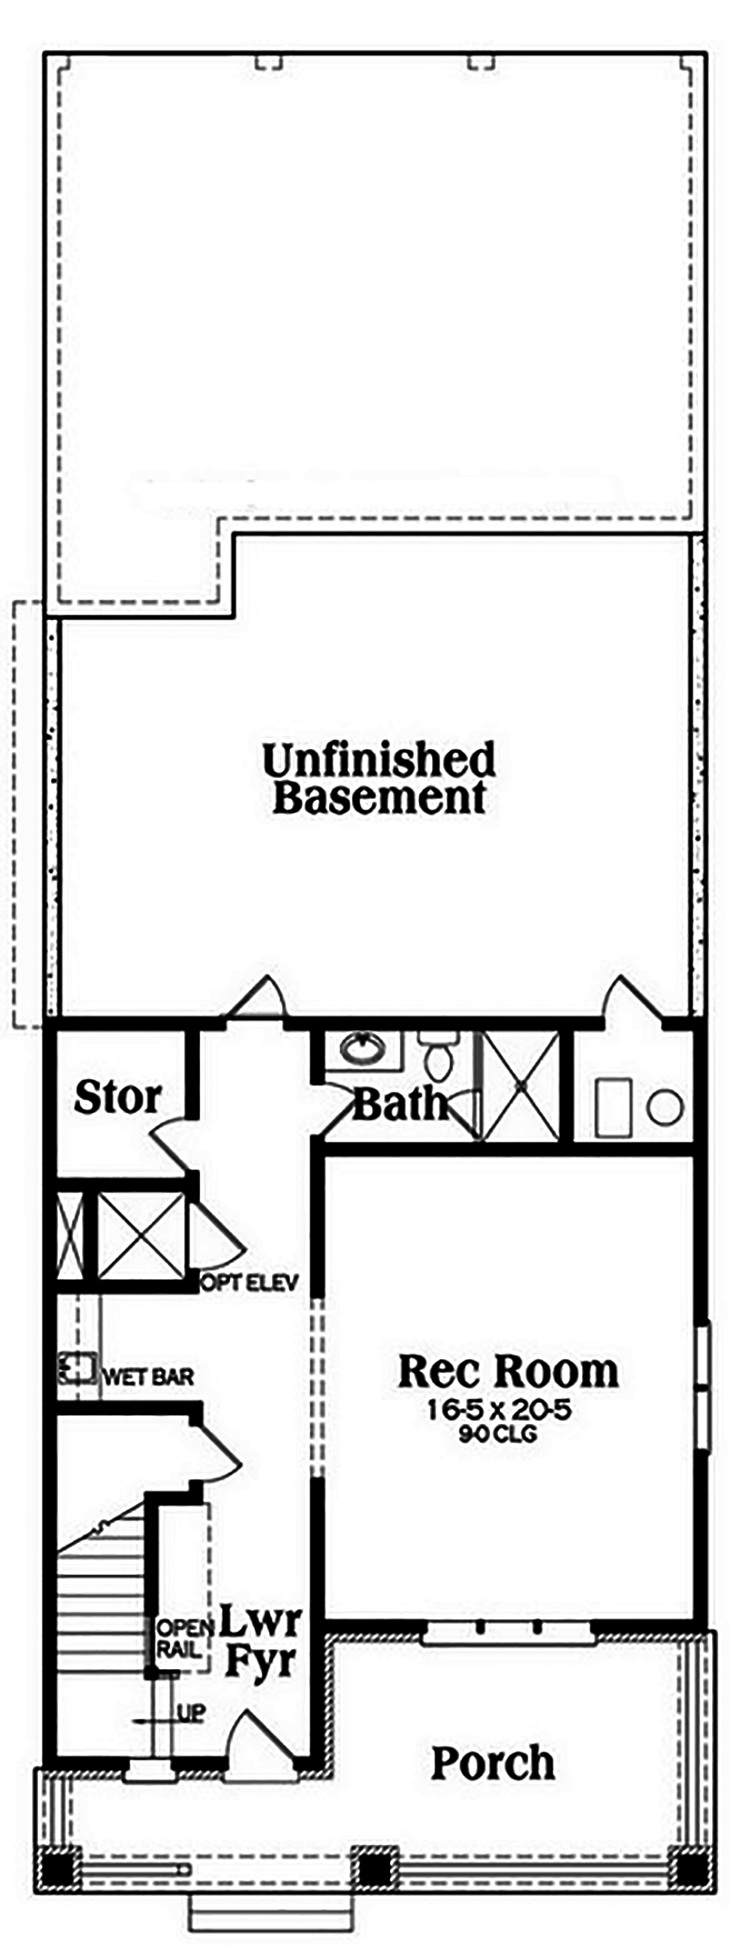 Coastal house plan 104 1184 3 bedrm 3241 sq ft home Cost of building a basement per square foot